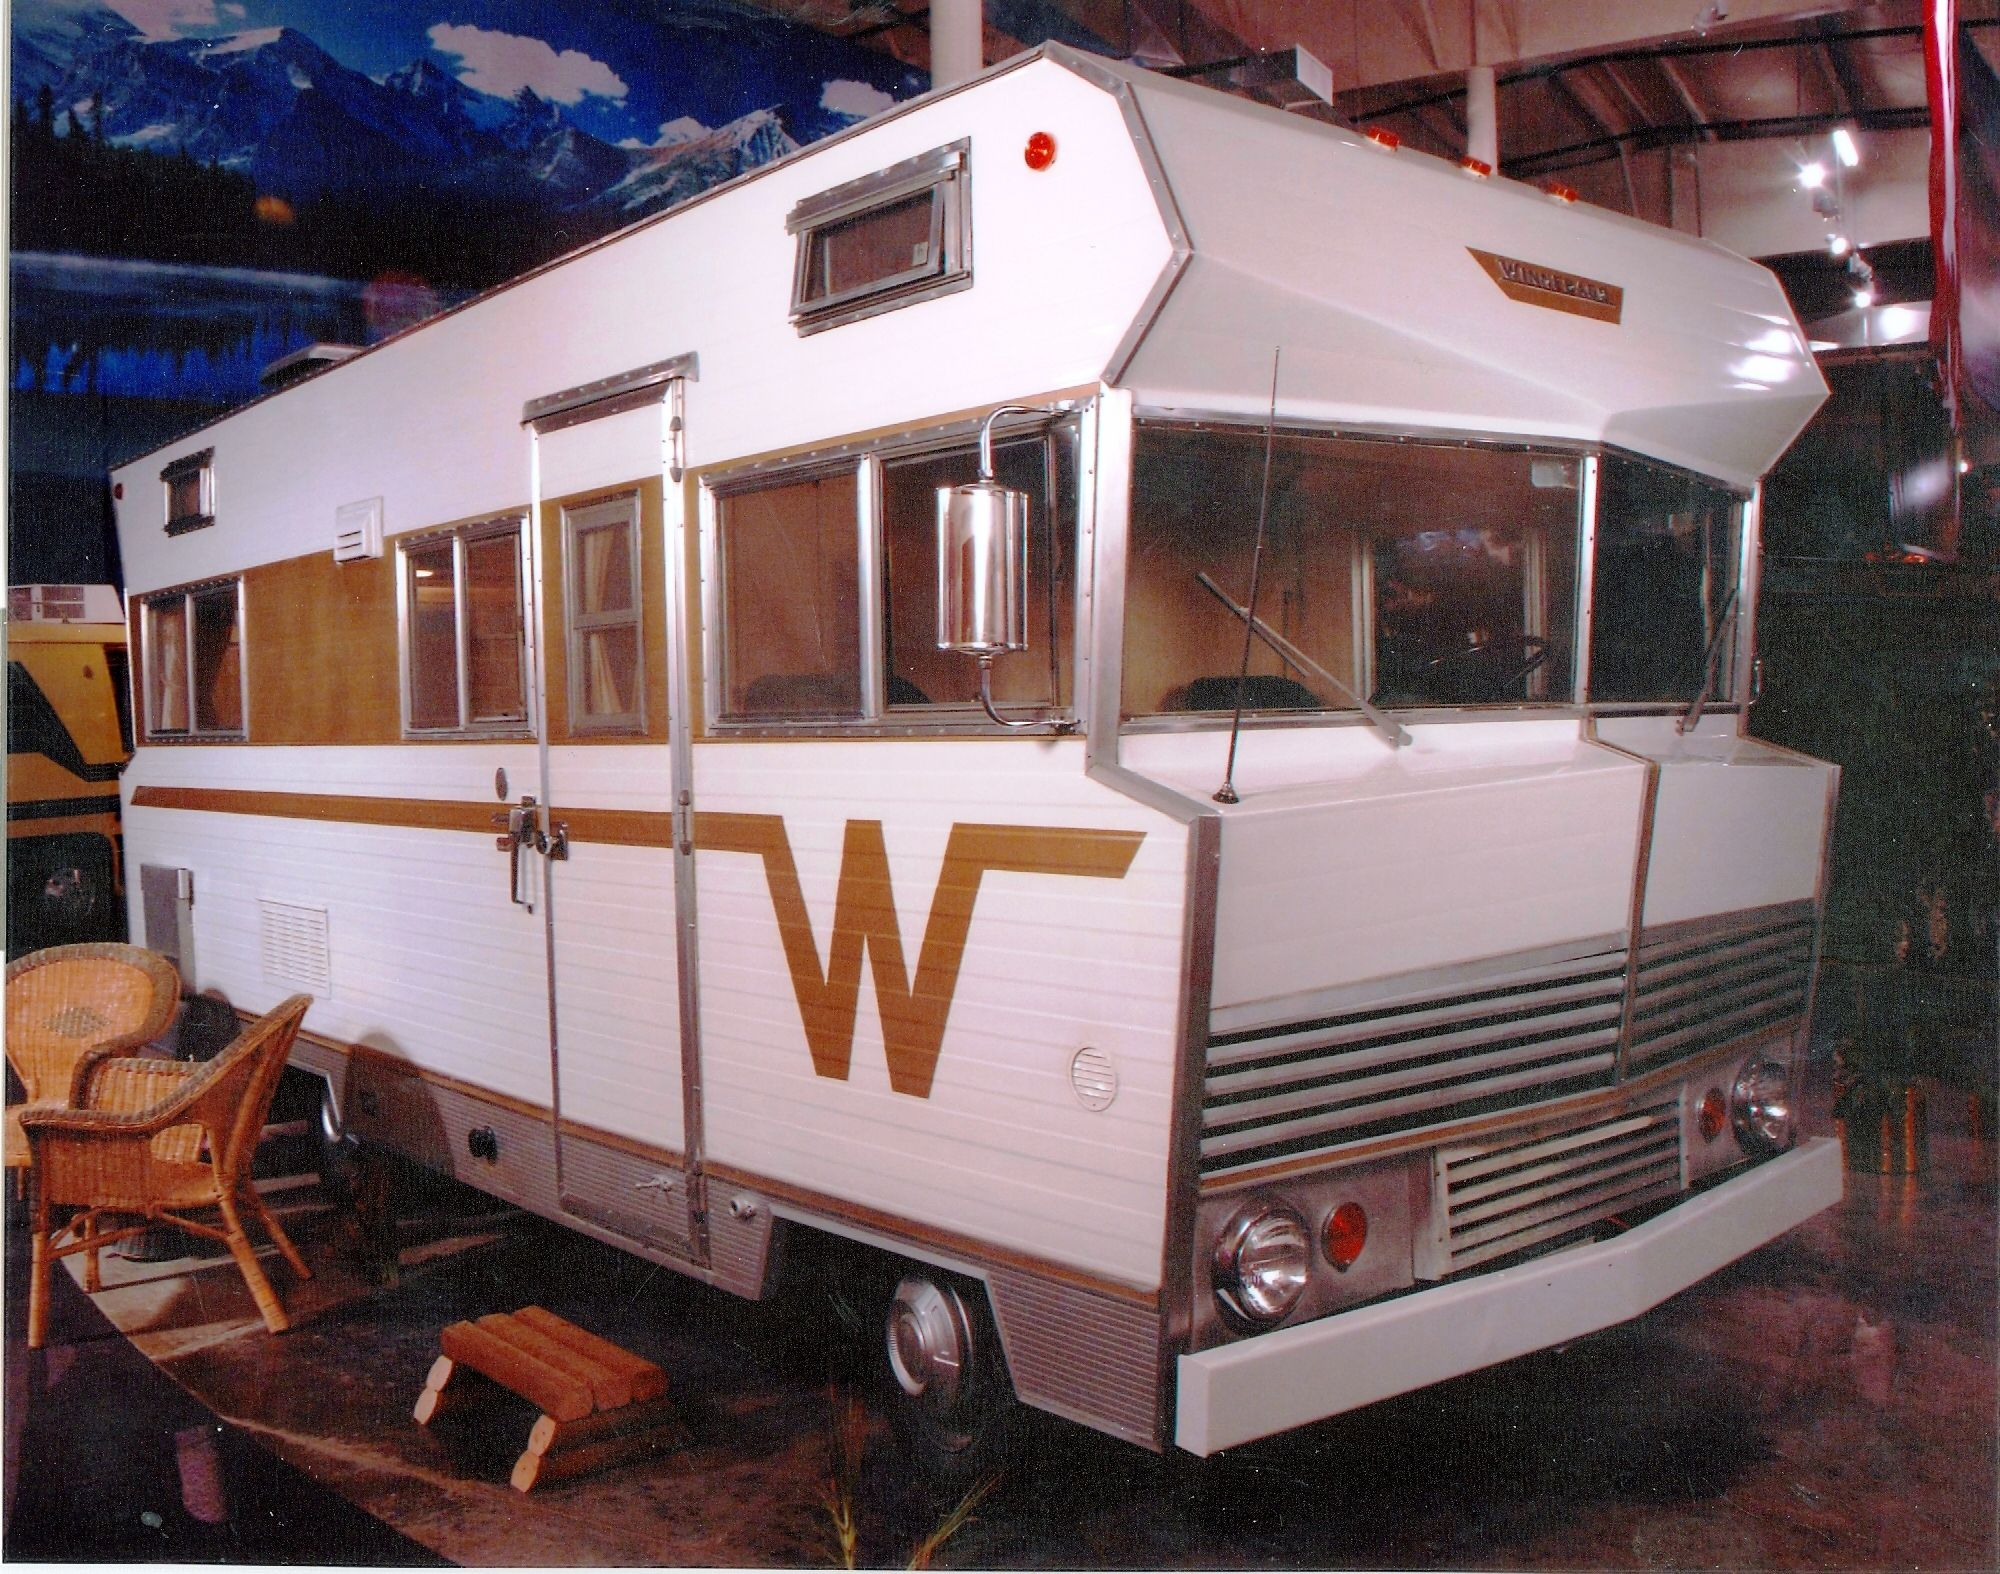 Innovative The RV Park Is Easily Accessible Off Interstate78 And Can Accommodate RVs Up To 45feet In Length  Travel And Allowing You To Pack In Plenty Of NYC Fun 1 911